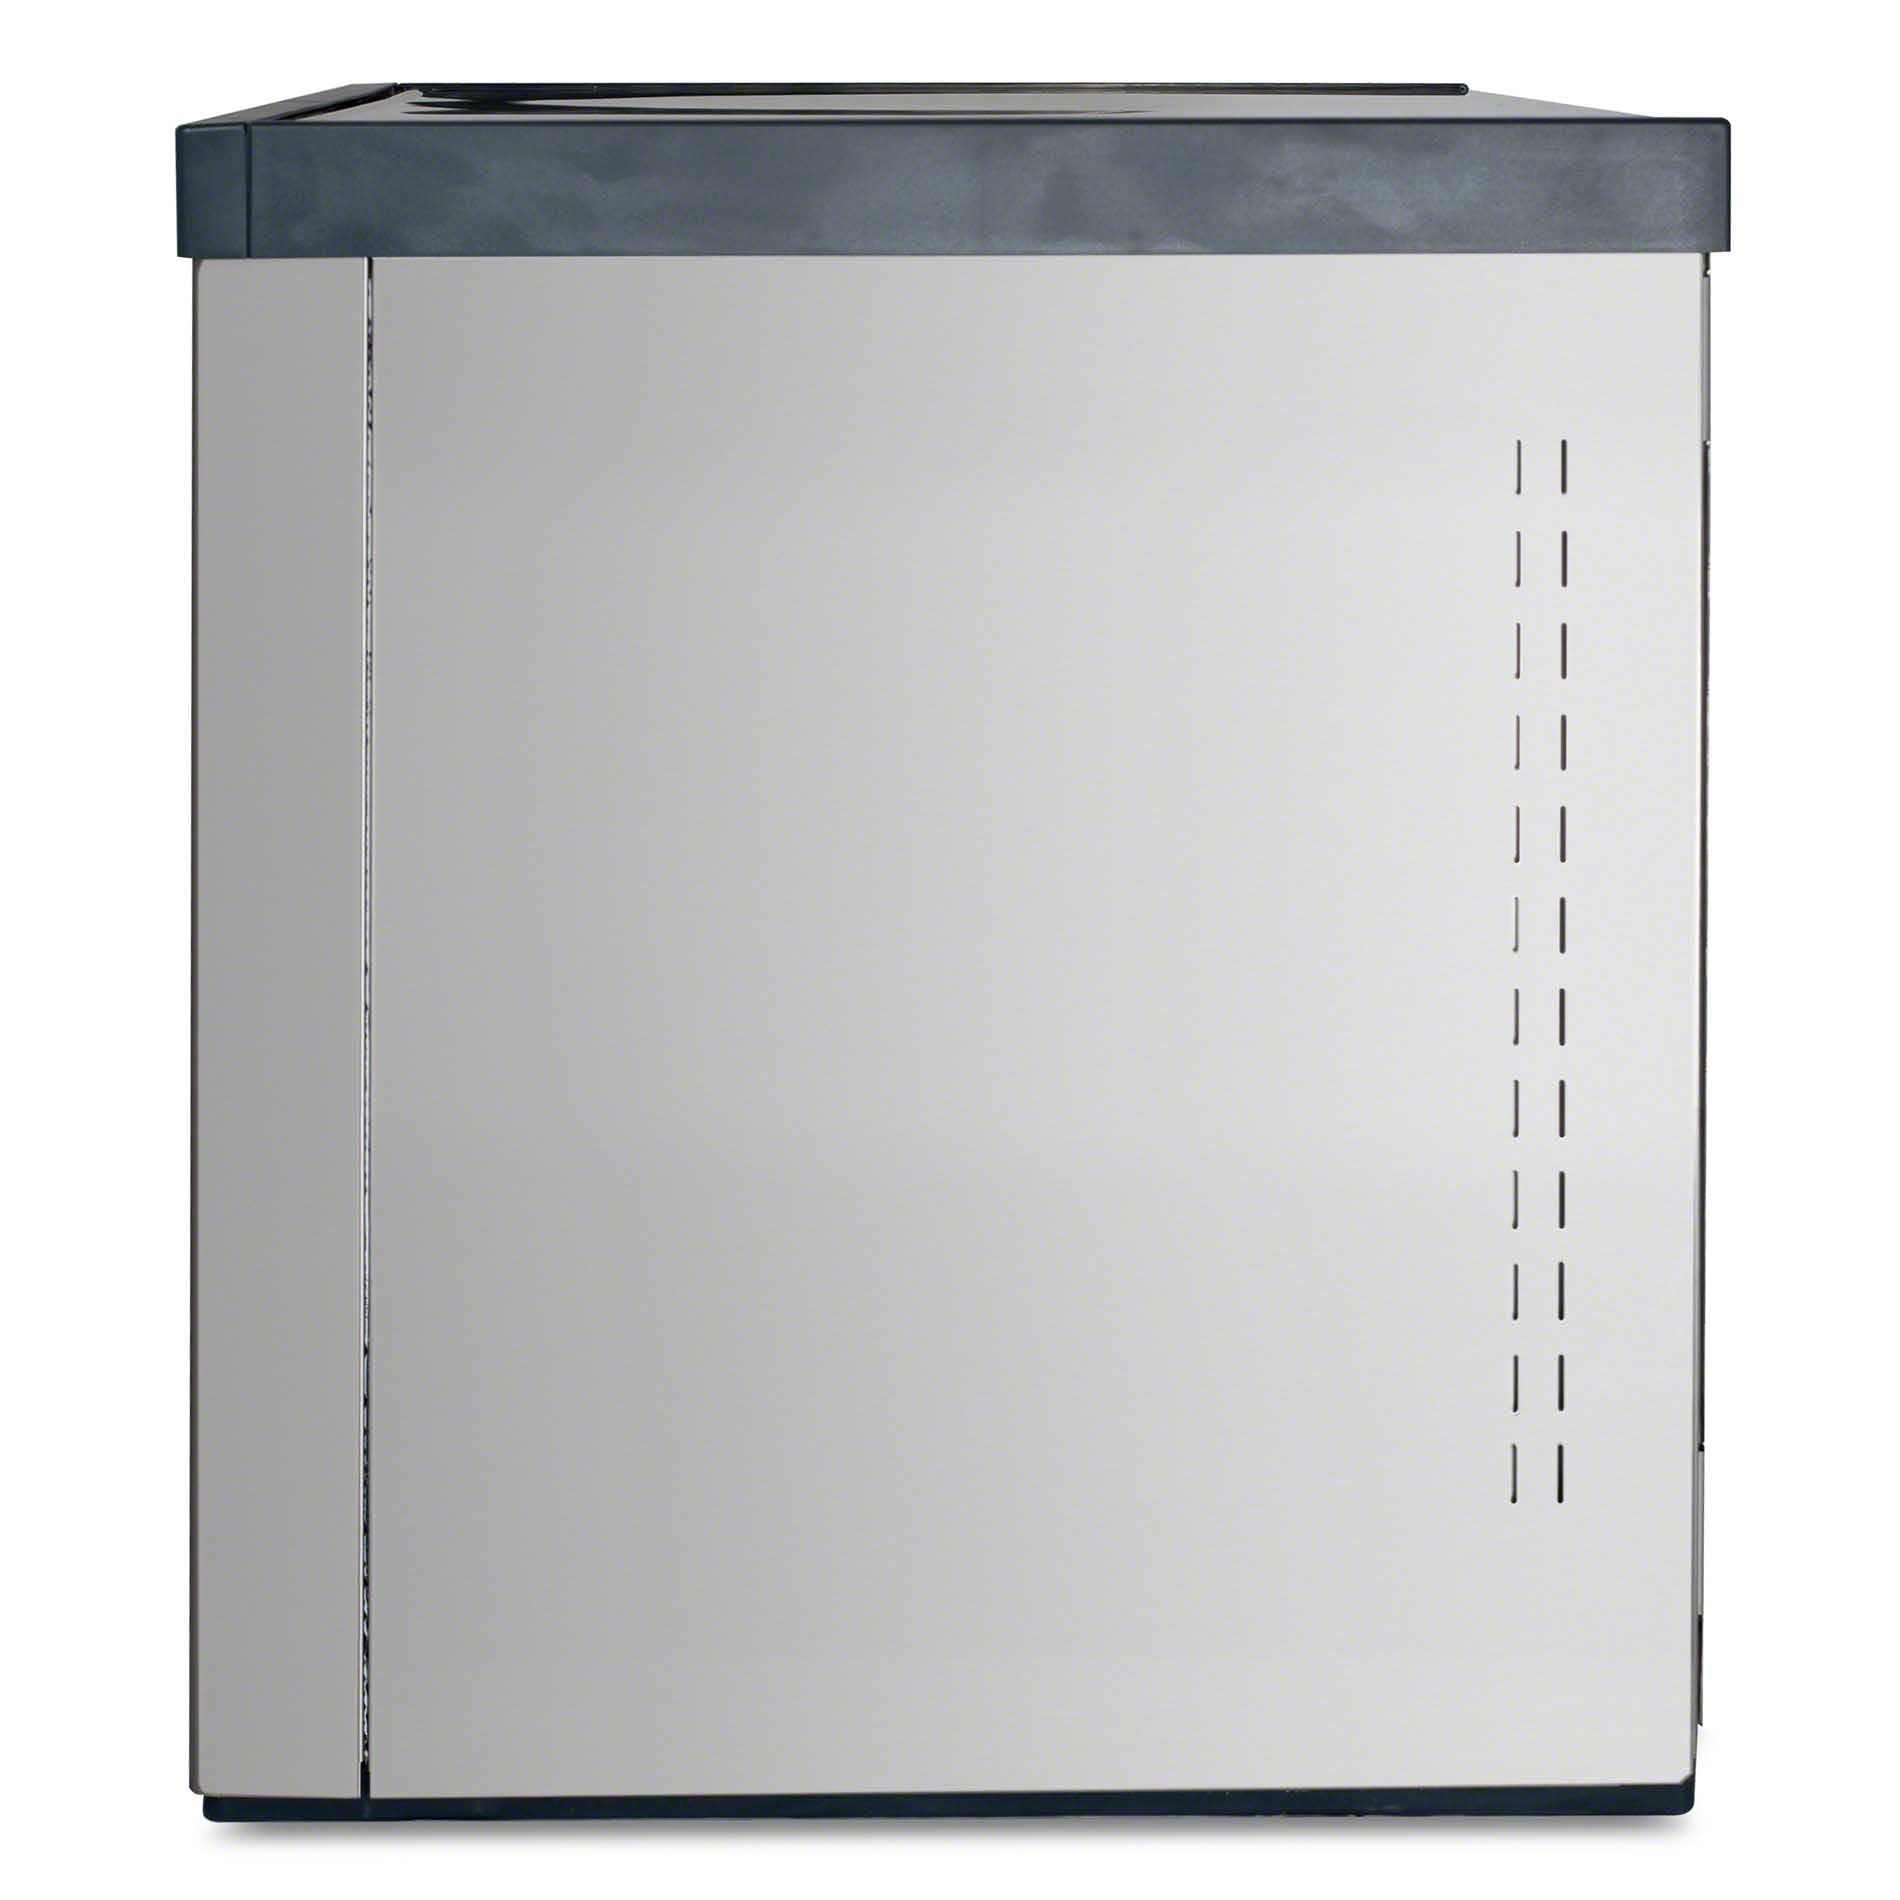 Scotsman - C1030MA-3A 1077 lb Full Size Cube Ice Machine - Prodigy Series - sold by Food Service Warehouse